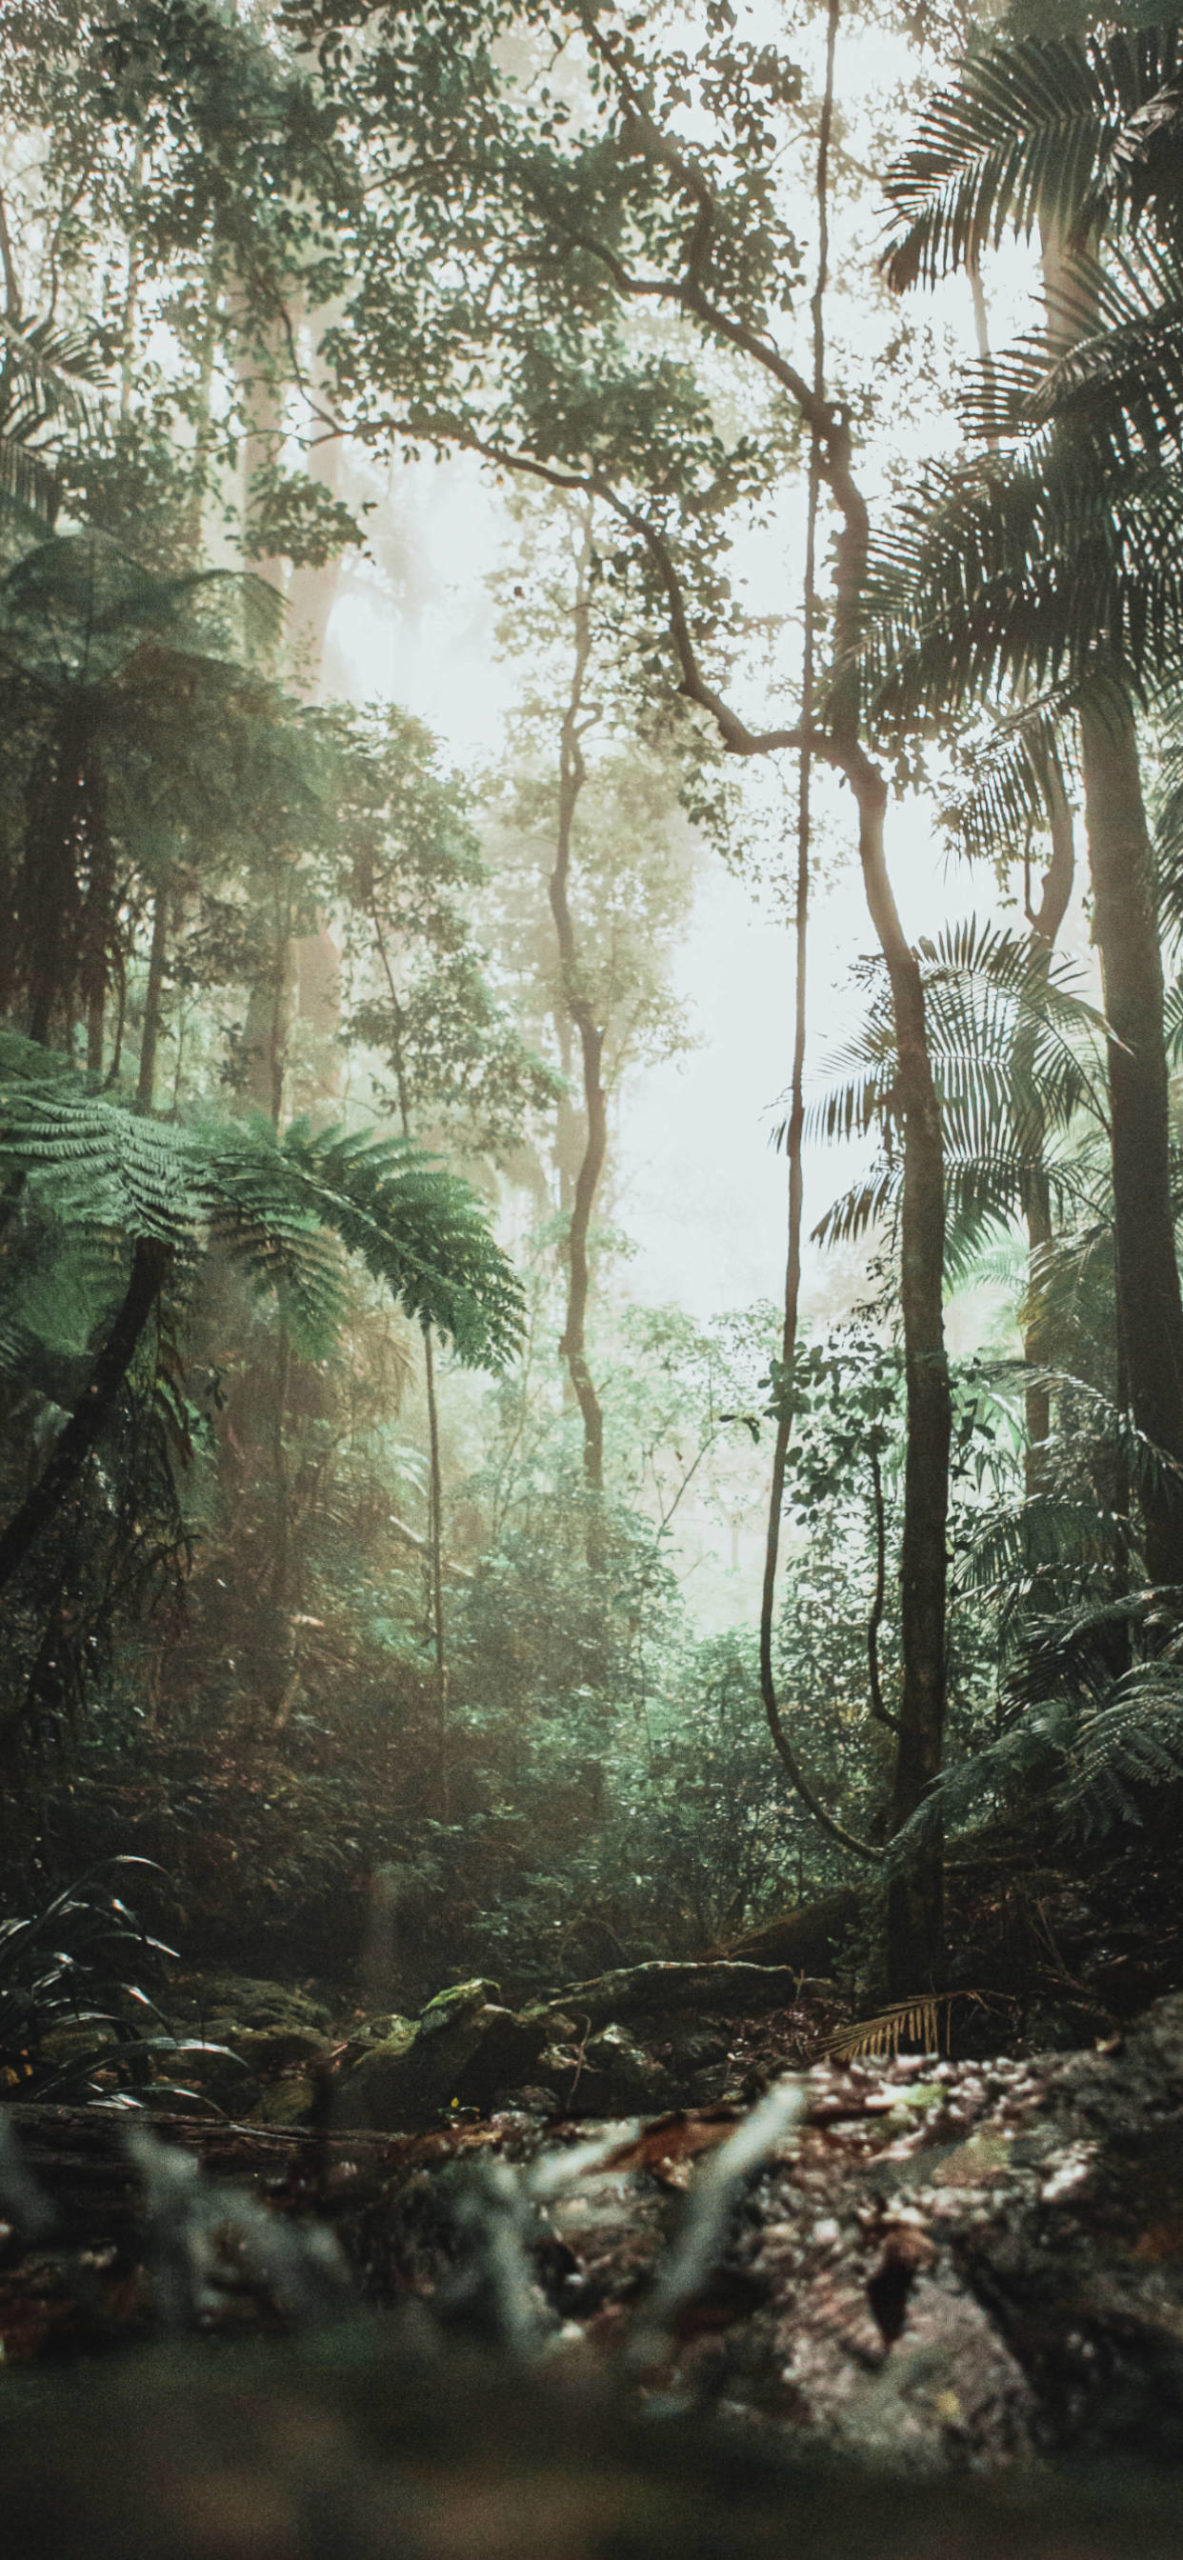 iPhone wallpapers jungle down view scaled Jungle